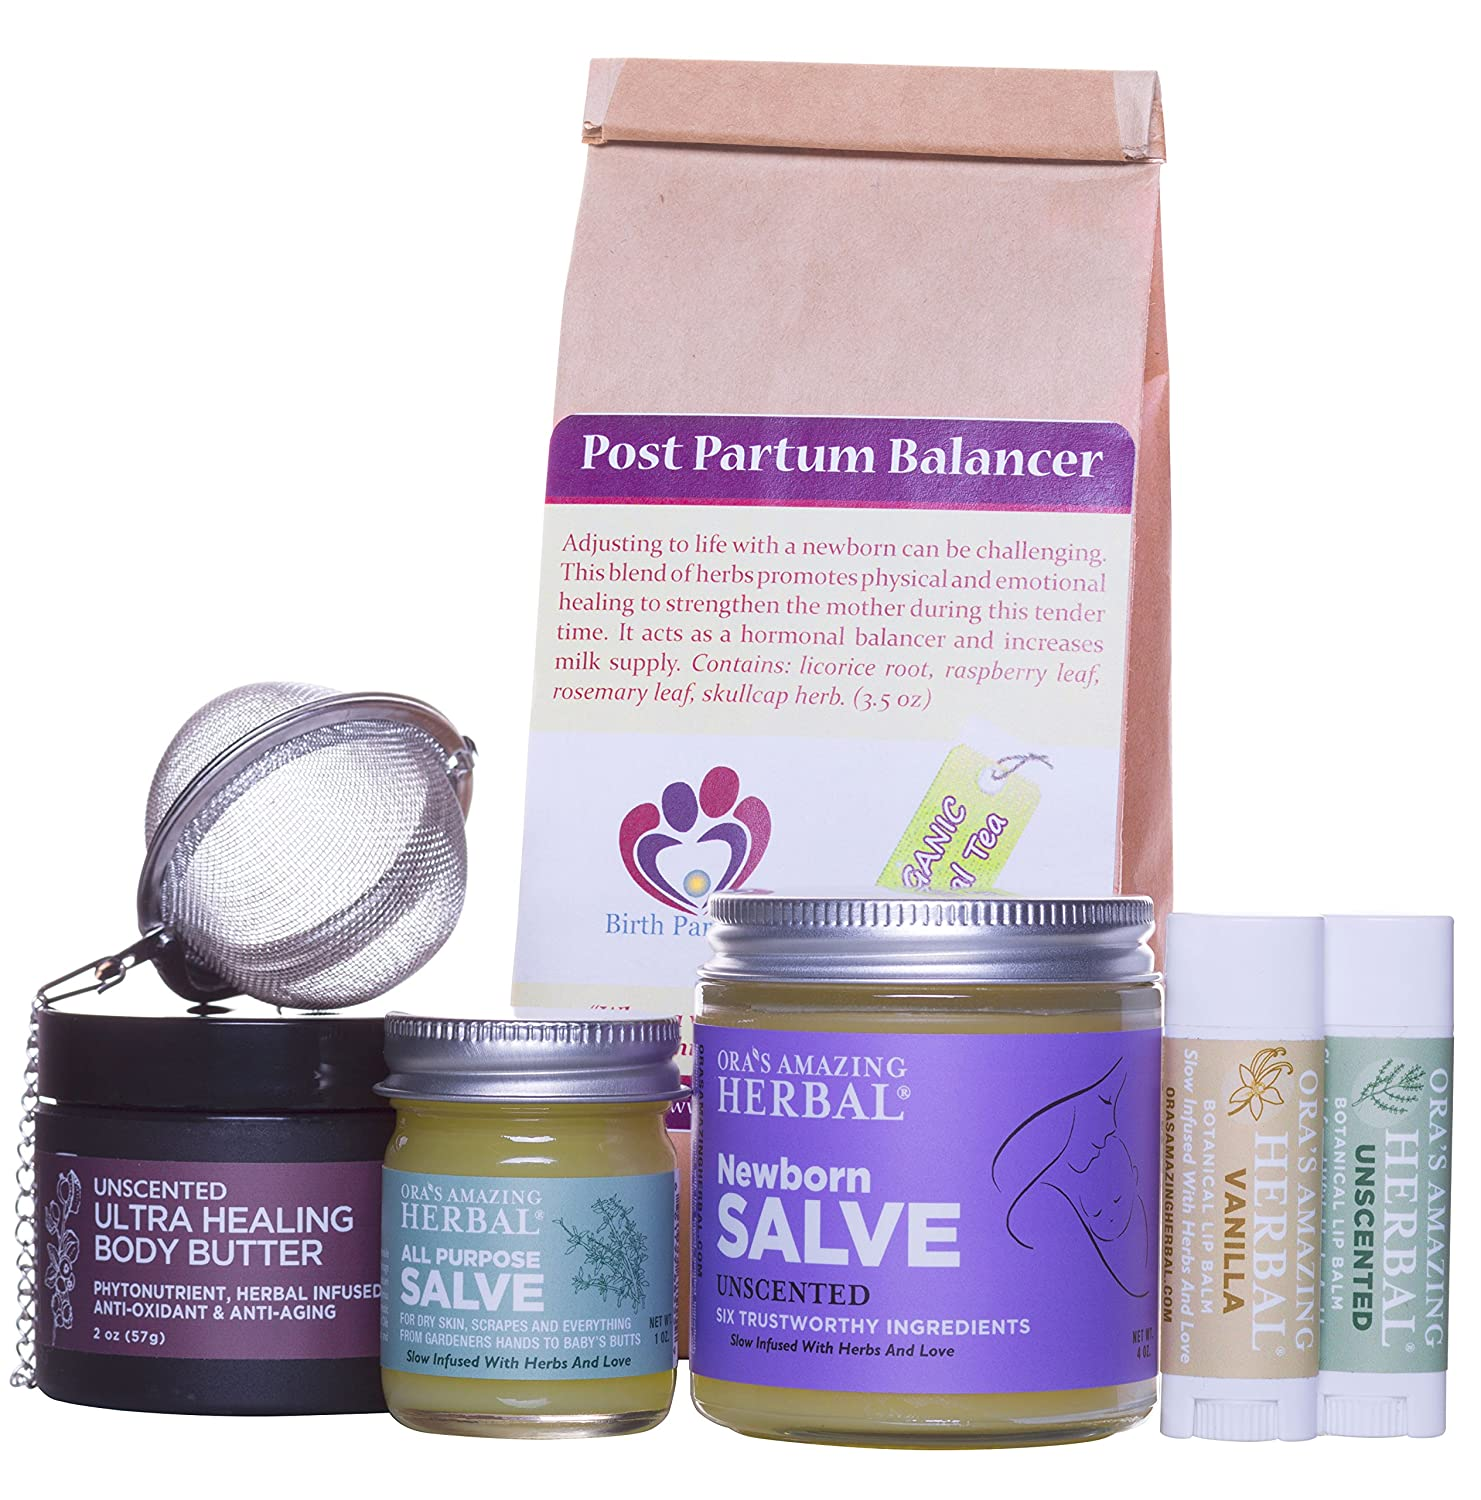 New Mama Natural Gift Box For A New Mother, With Organic Herbal Tea and Paraben Free Salve (Lotion, Cream, Moisturizer) New Baby Mother Gift, Ora's Amazing Herbal Ora' s Amazing Herbal